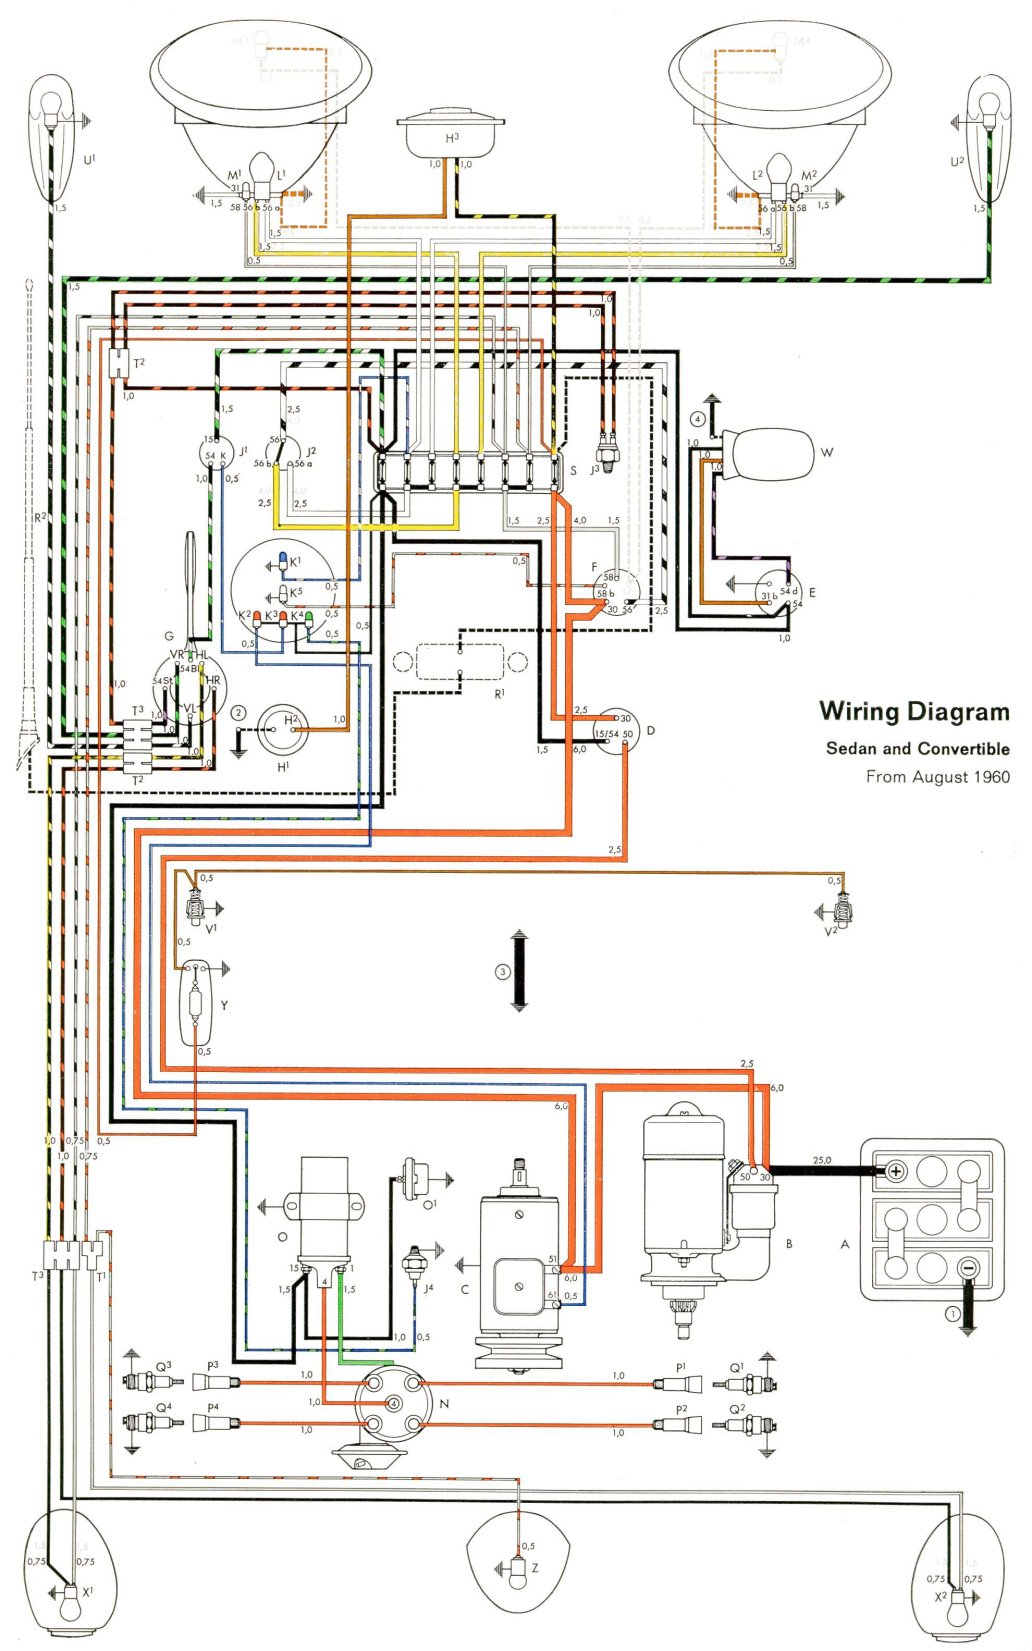 1961 beetle wiring diagram thegoldenbug com 70 VW Wiring Diagram 1961 beetle wiring diagram